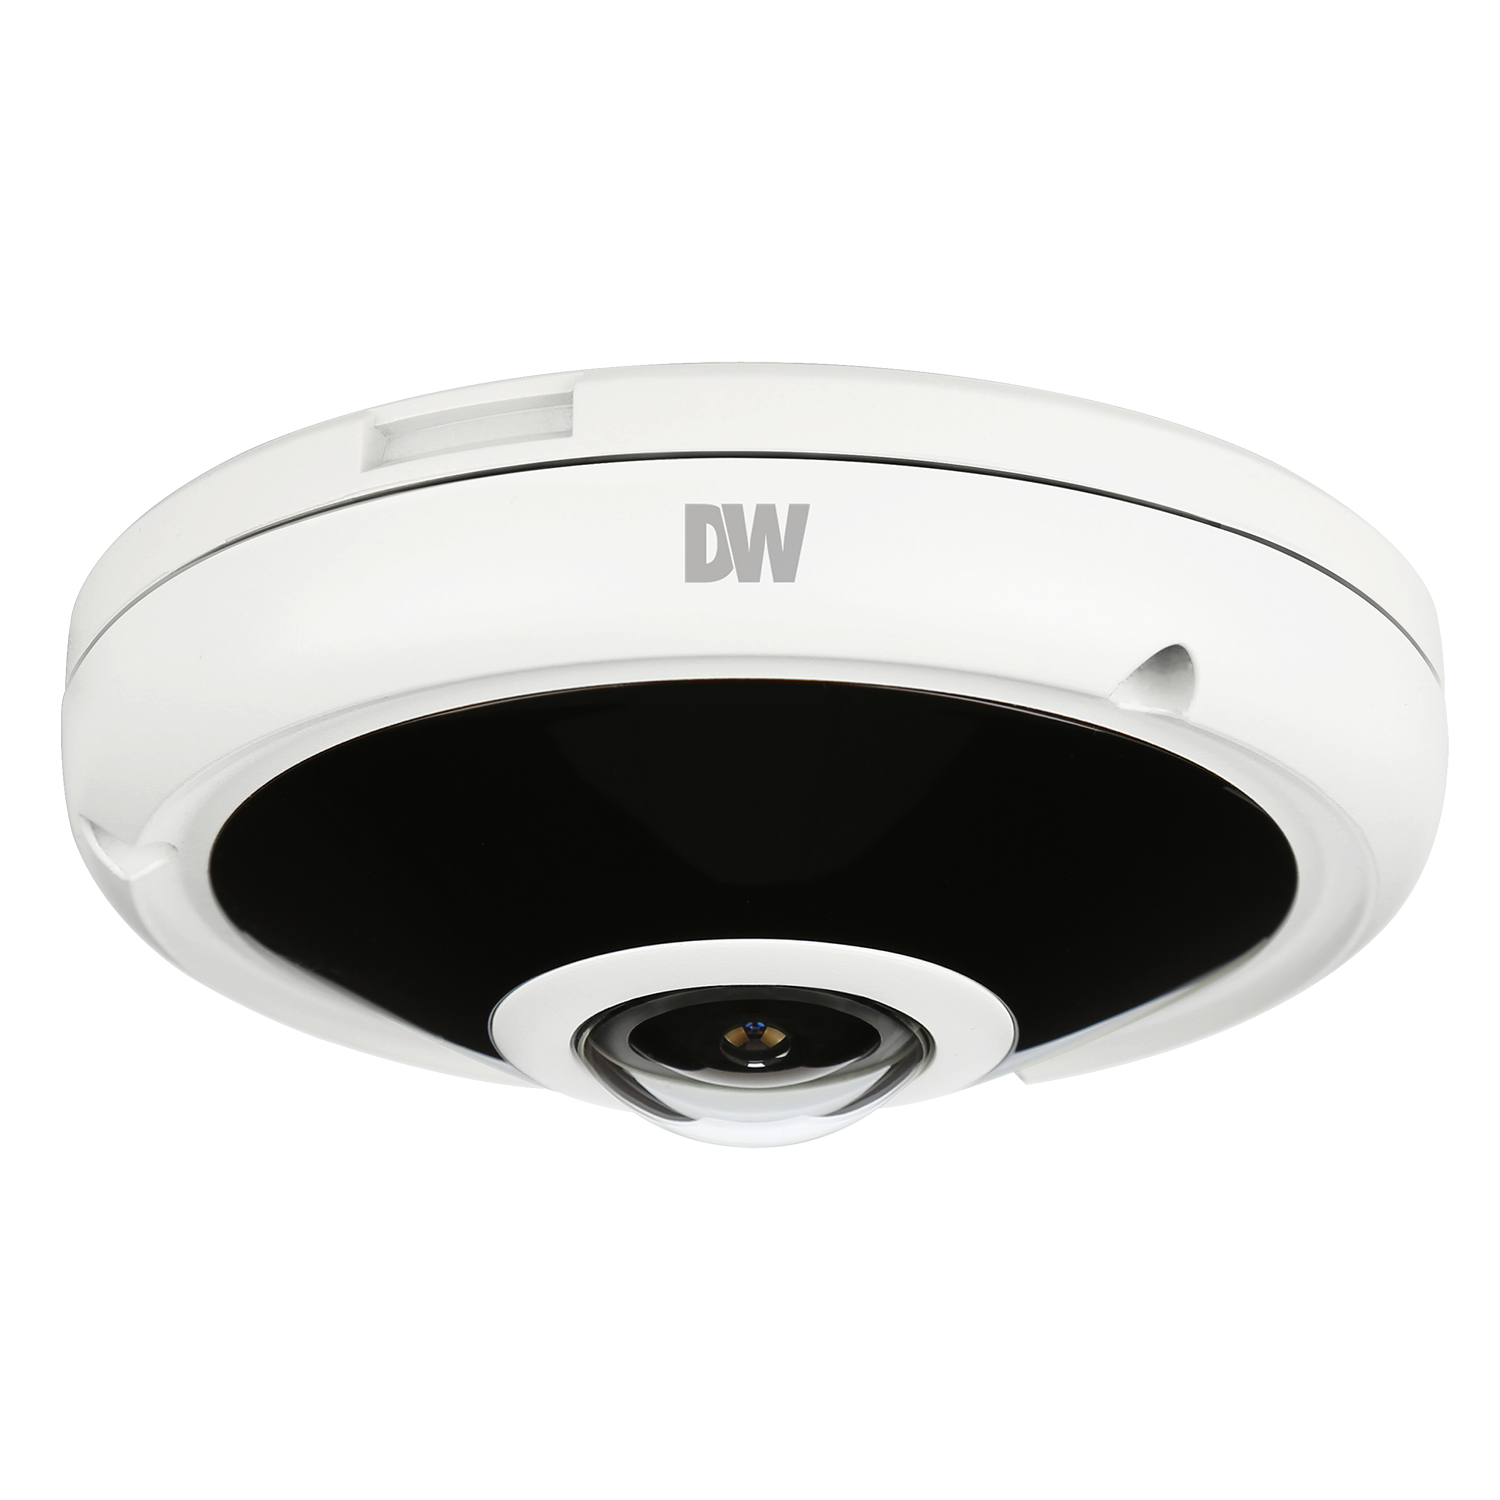 DWC-PVF5M1TIRC6 DIGITAL WATCHDOG MEGApix PANO 5MP 360-degree Hemispheric Fisheye Vandal Dome, 360 and 180-degree Panoramic view with Edge to Edge Clarity, 1/1.8 Image Sensor, 30fps @ 2592x1944, 1.55mm fixed lens, Multi Codecs (H.265, H.264, MJPEG) with Simultaneous Dual Streams, 55ft Smart IR, True Day/Night with Mechanical IR Cut Filter, Smart DNR 3D Digital Noise Reduction, Auto Gain Control (AGC), Auto White Balance (AWB), Motion Detection, Micro SD/SDHC Class 10 Card Slot (card not included), Web Server Bullet In, Onvif Profile S, POE and DC12V, 5 Year Warranty. Note: DW Spectrum IPVMS pre loaded. Connect up to 12 CaaS cameras simultaneously in a single system. Built in 64GB memory for local recording. Dual recording option with Blackjack NAS. ************************* SPECIAL ORDER ITEM NO RETURNS OR SUBJECT TO RESTOCK FEE *************************